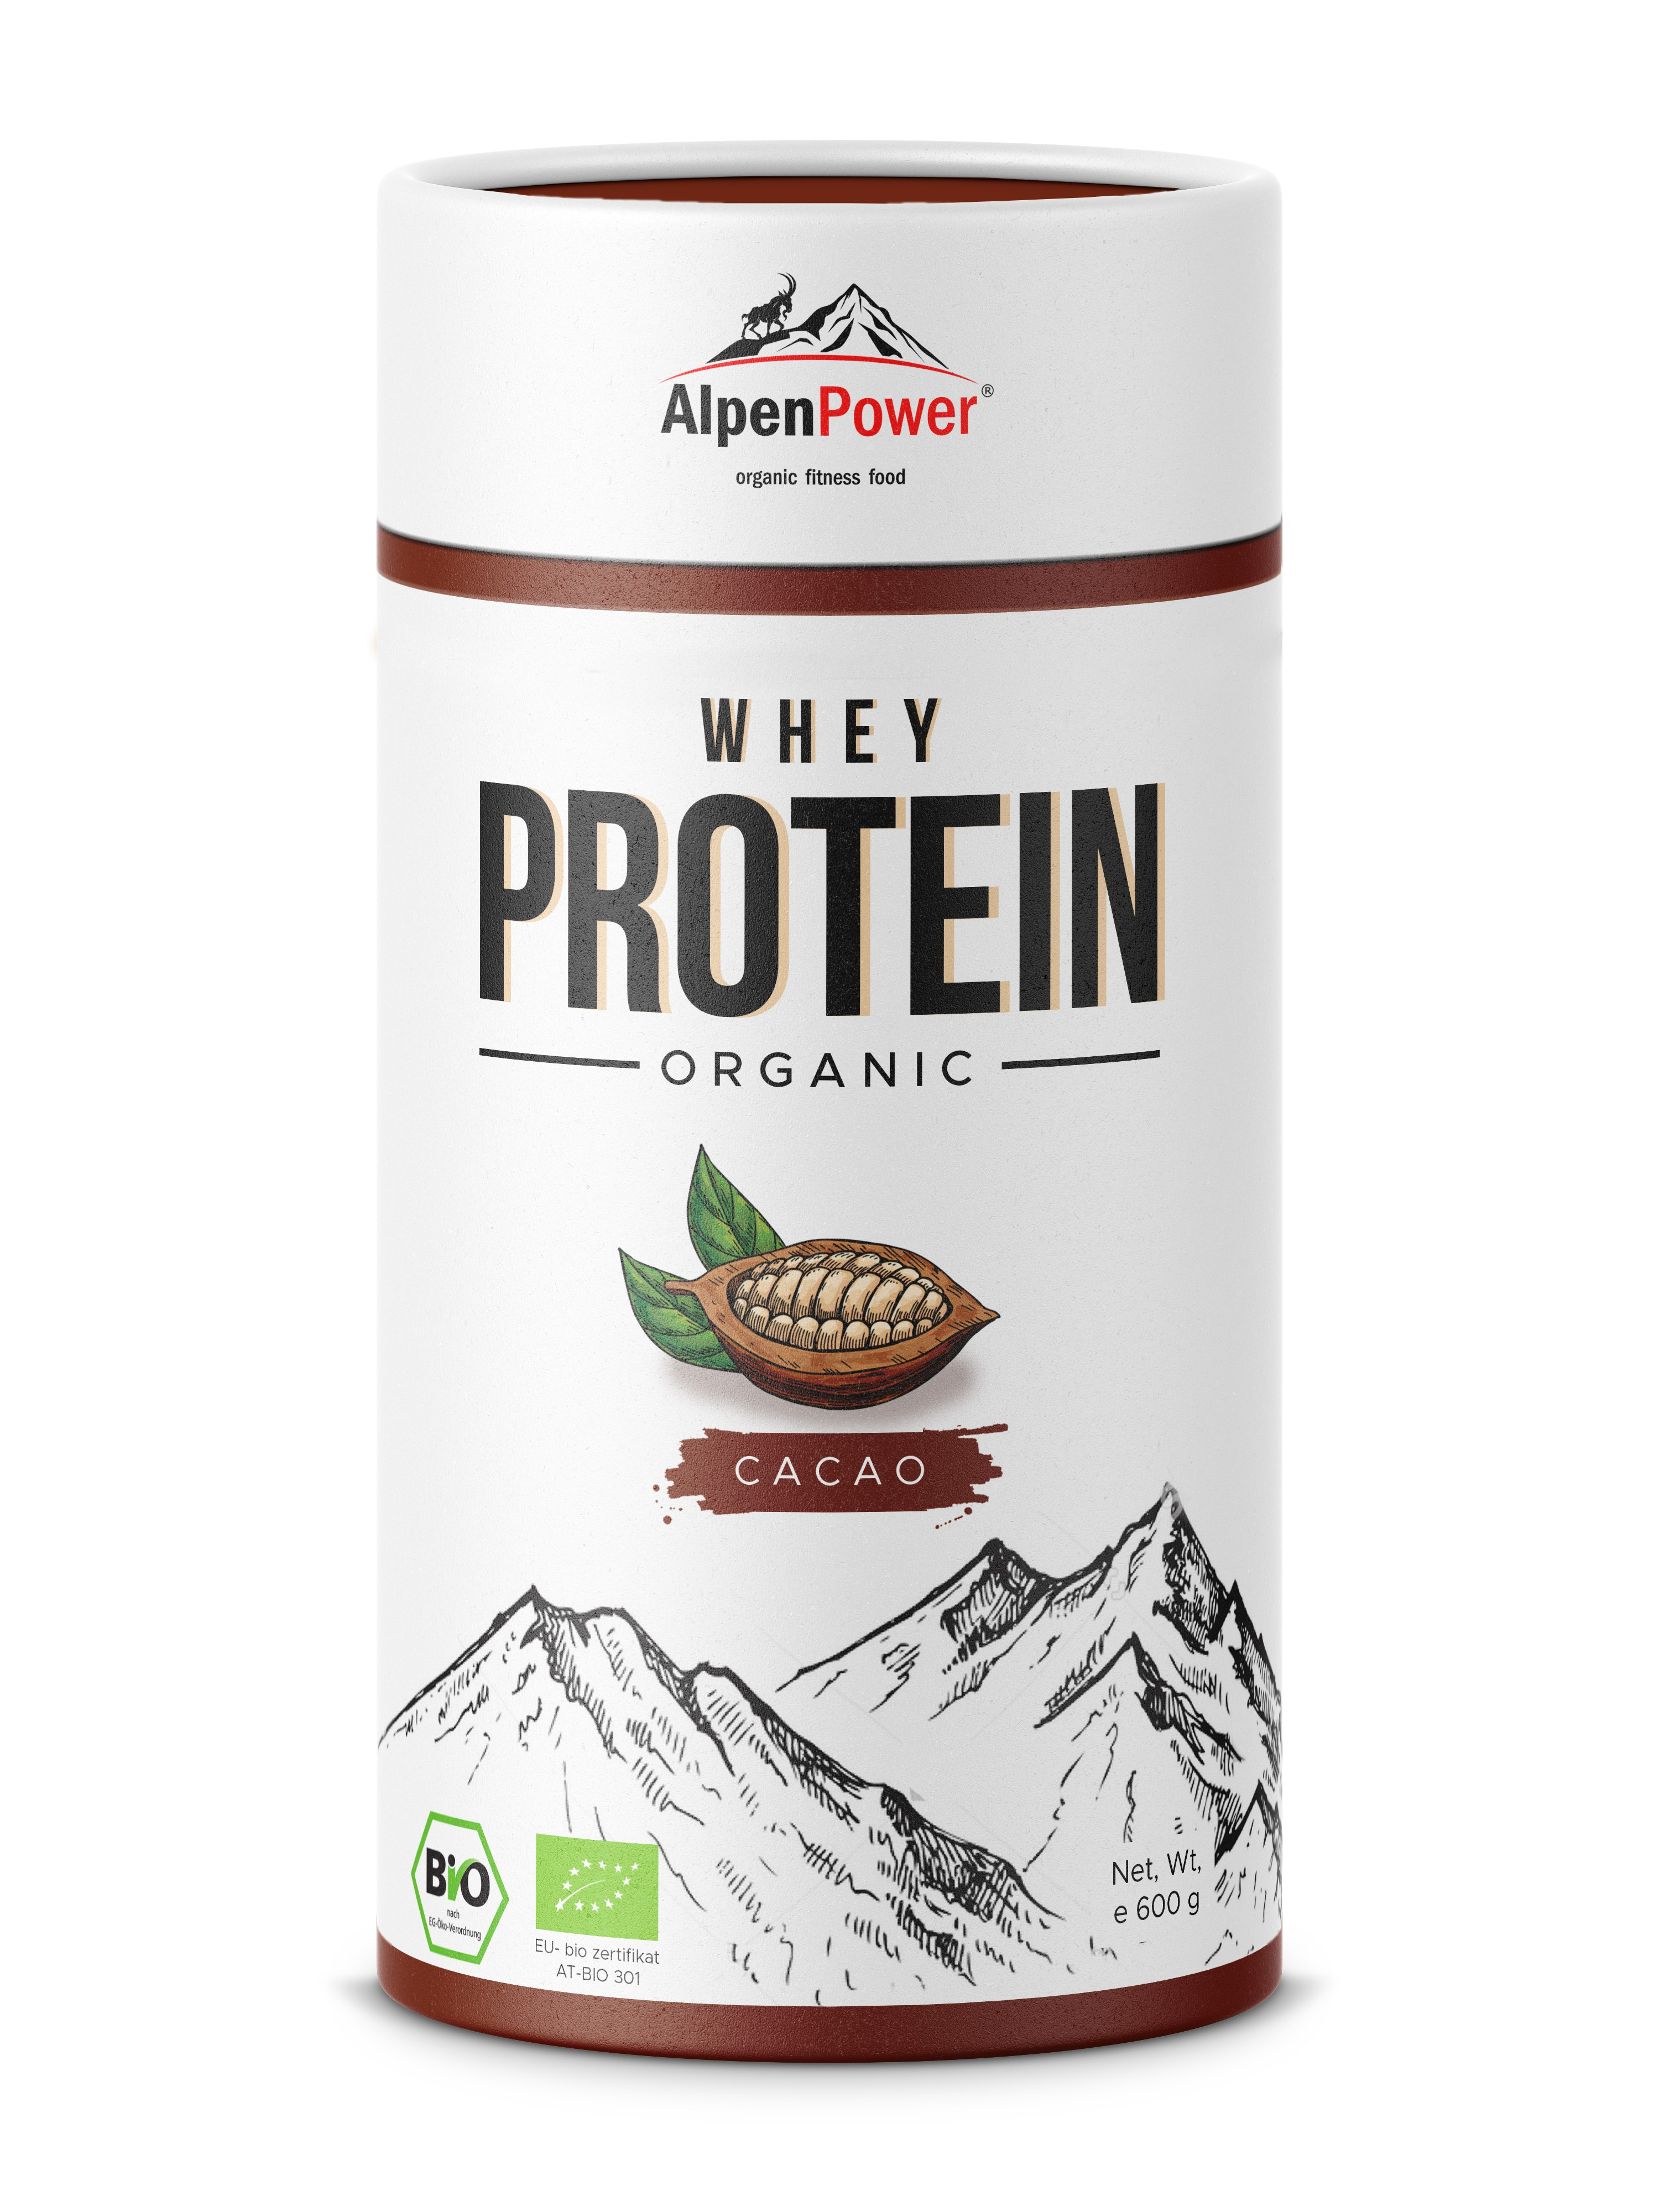 New Packaging Design for Organic Whey Protein (sports nutrition)